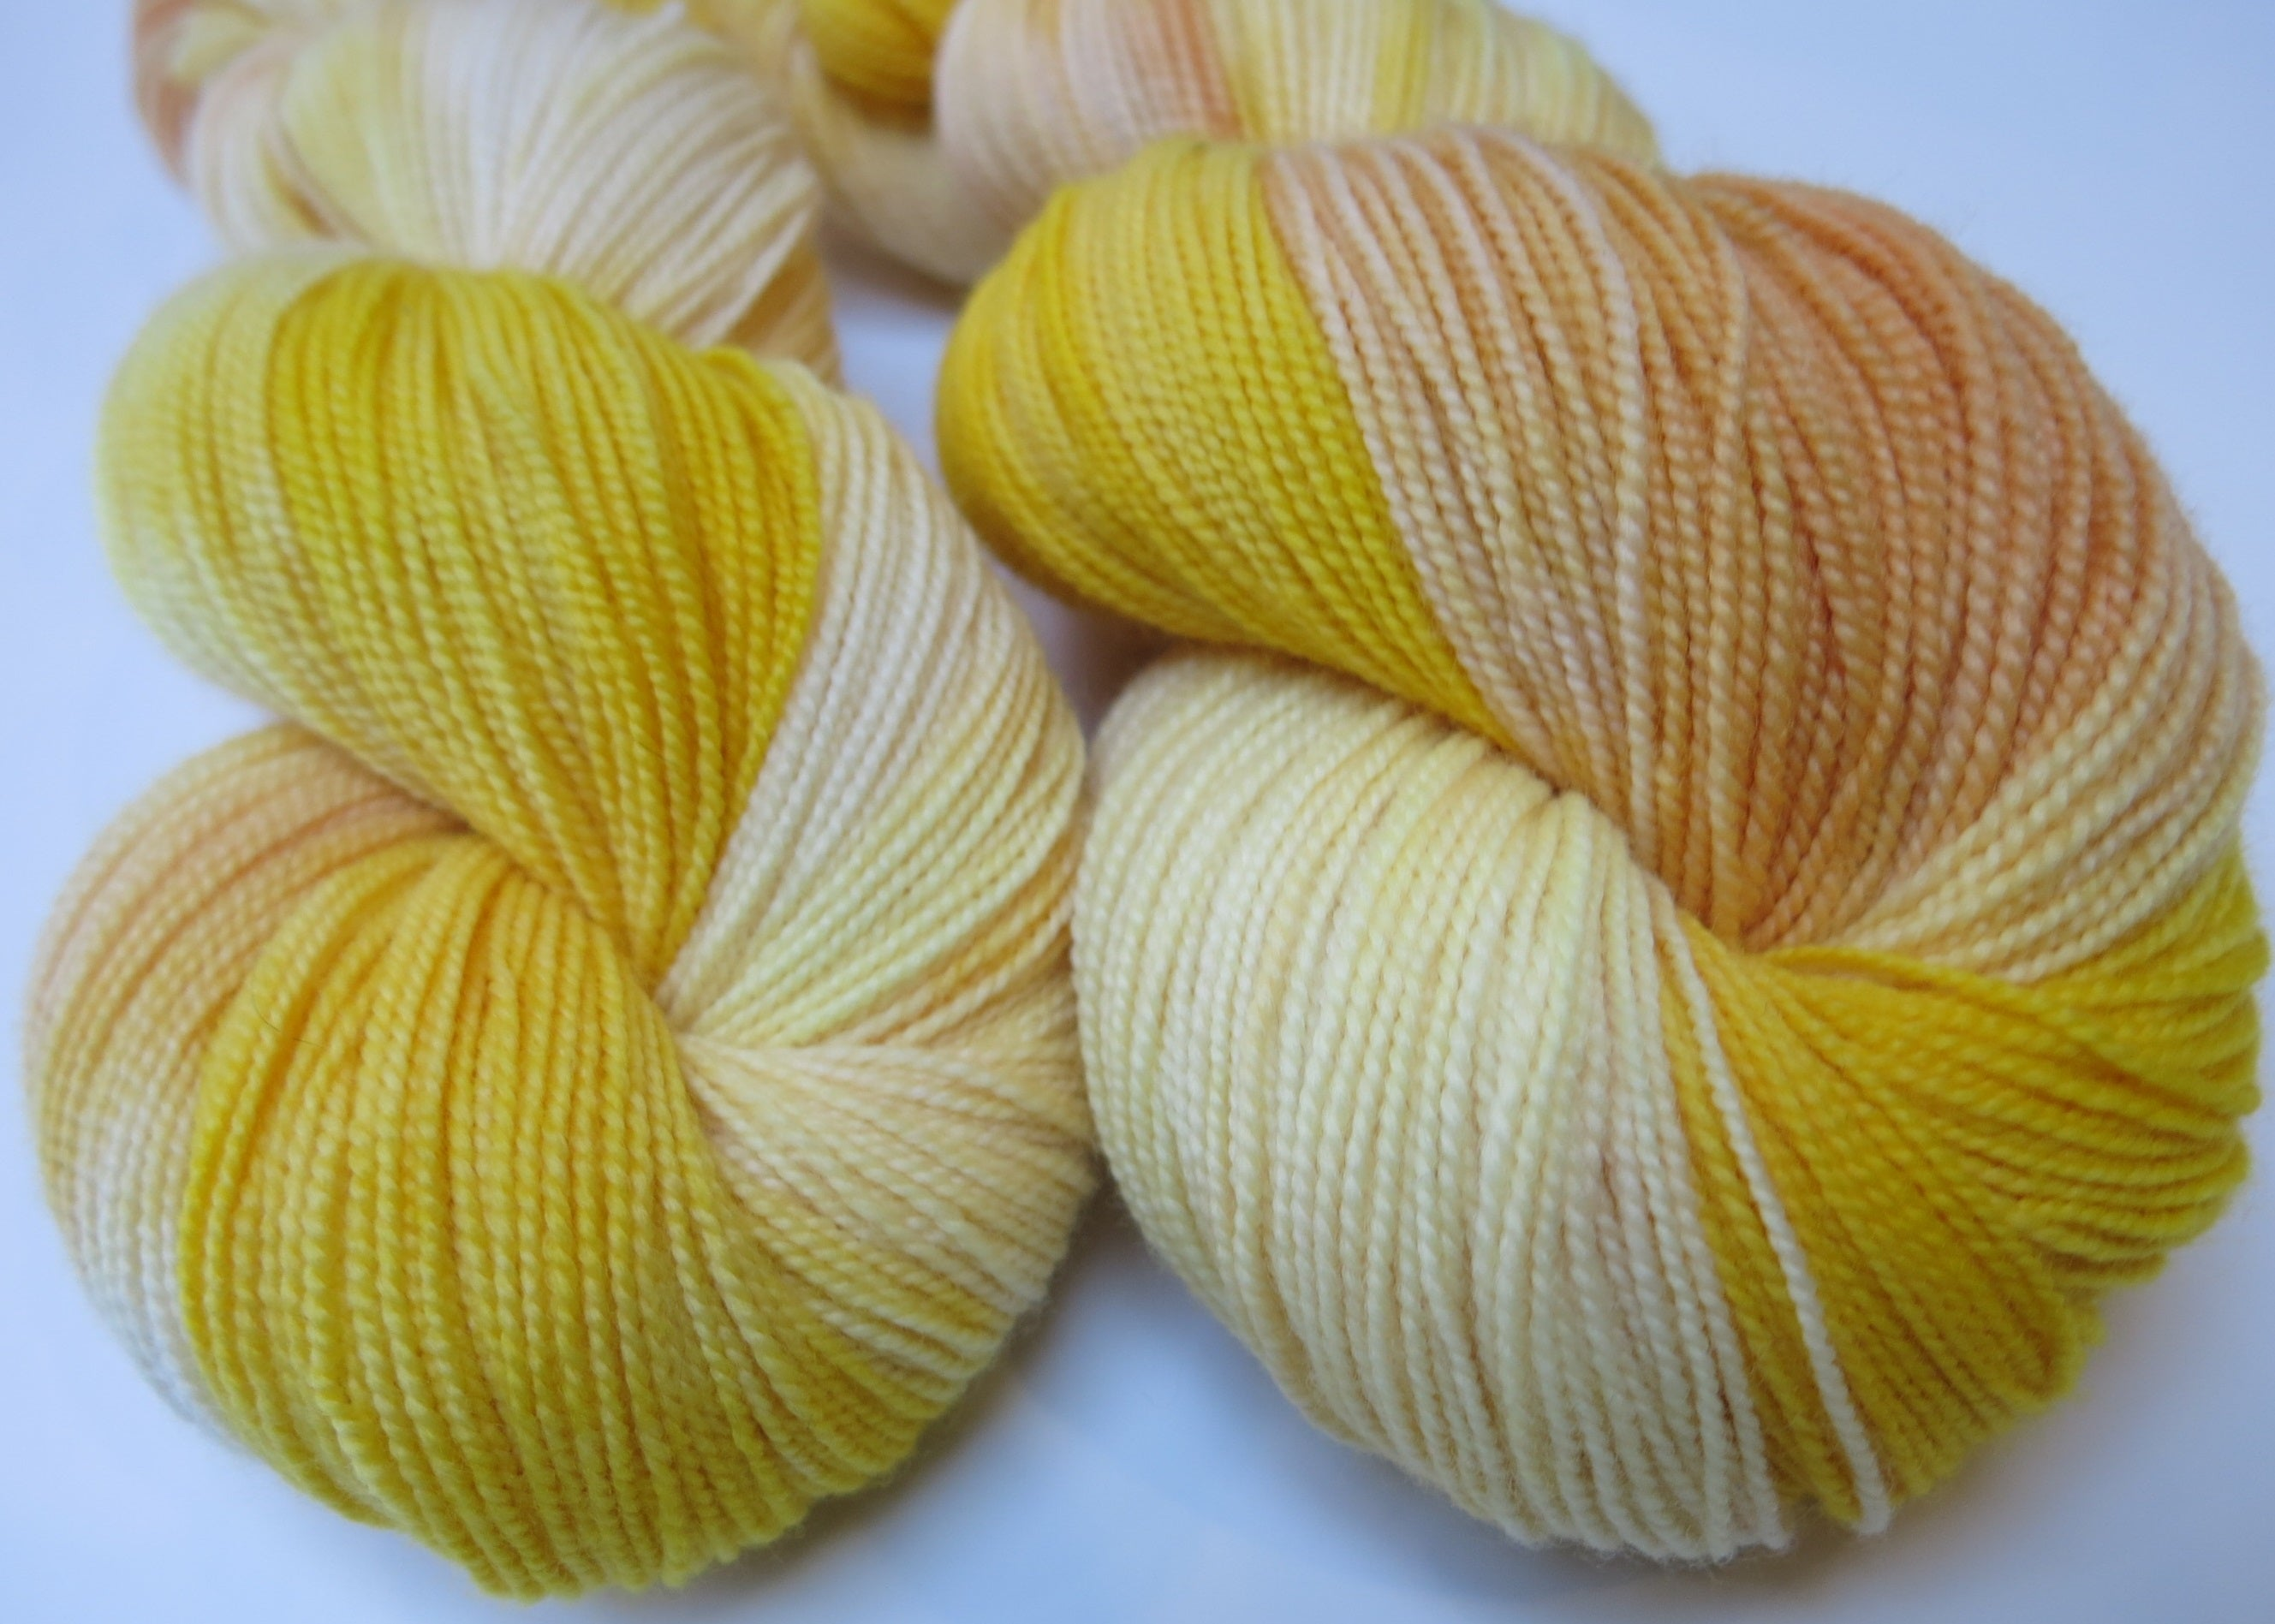 golden yellow kettle dyed merino sock yarn skeins